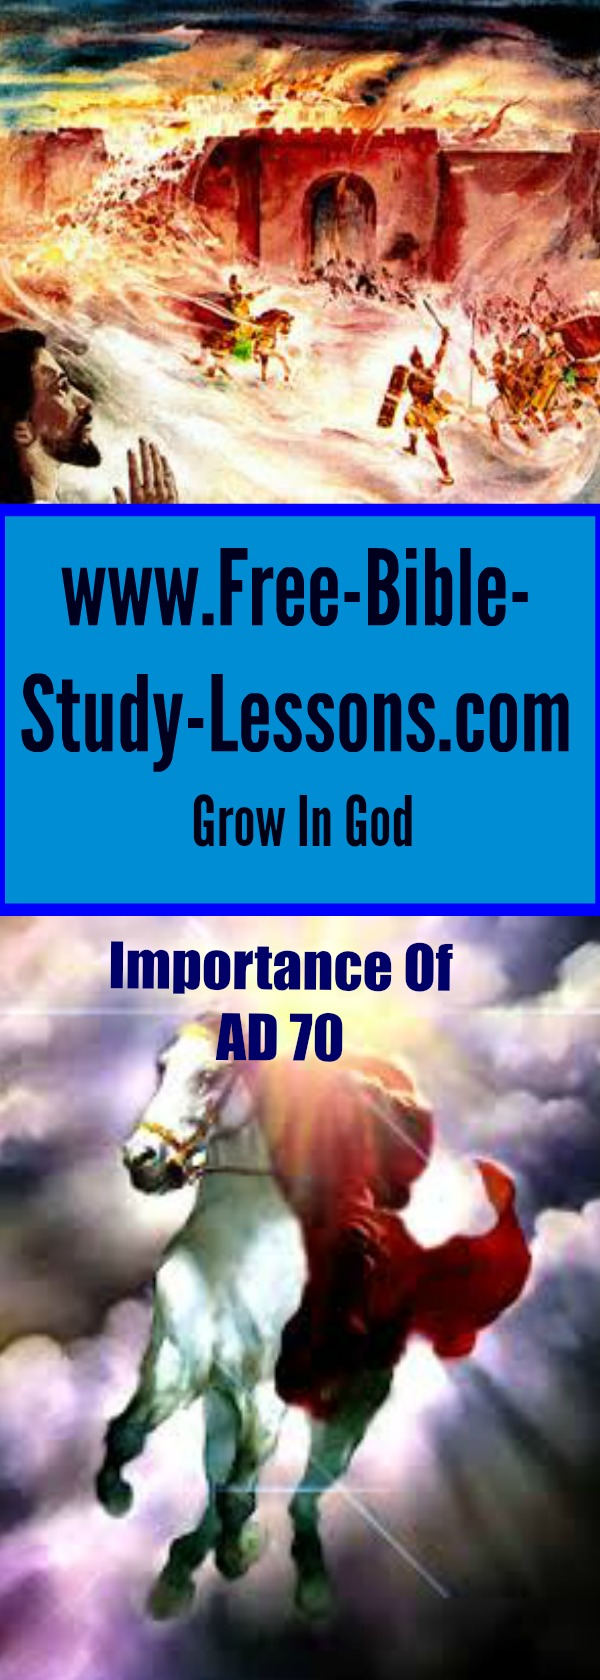 Understanding the importance of AD 70 sheds light on confusing New Testament Scriptures and gives a fuller understanding of the context in which the New Testament was written.